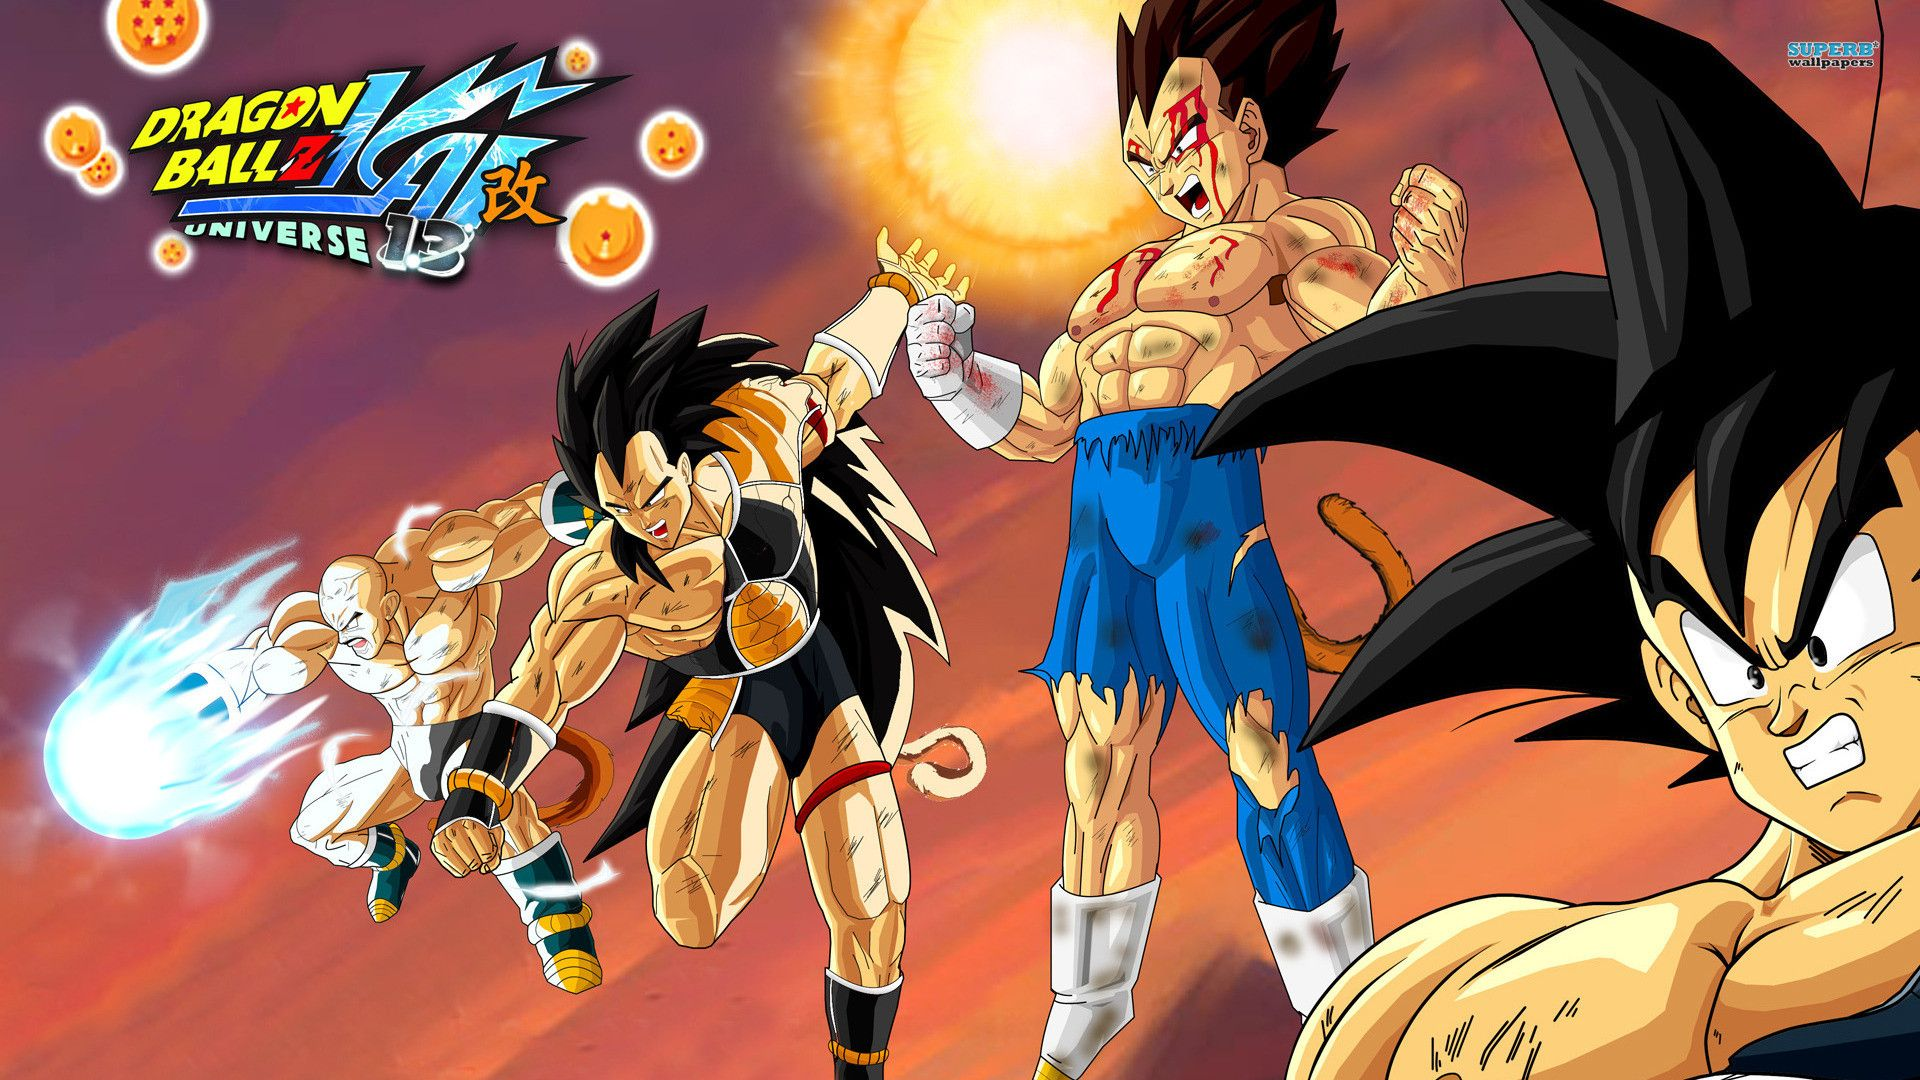 Wallpaper Dragon Ball Z Ps4 Dragonball Z Personagens Princesas